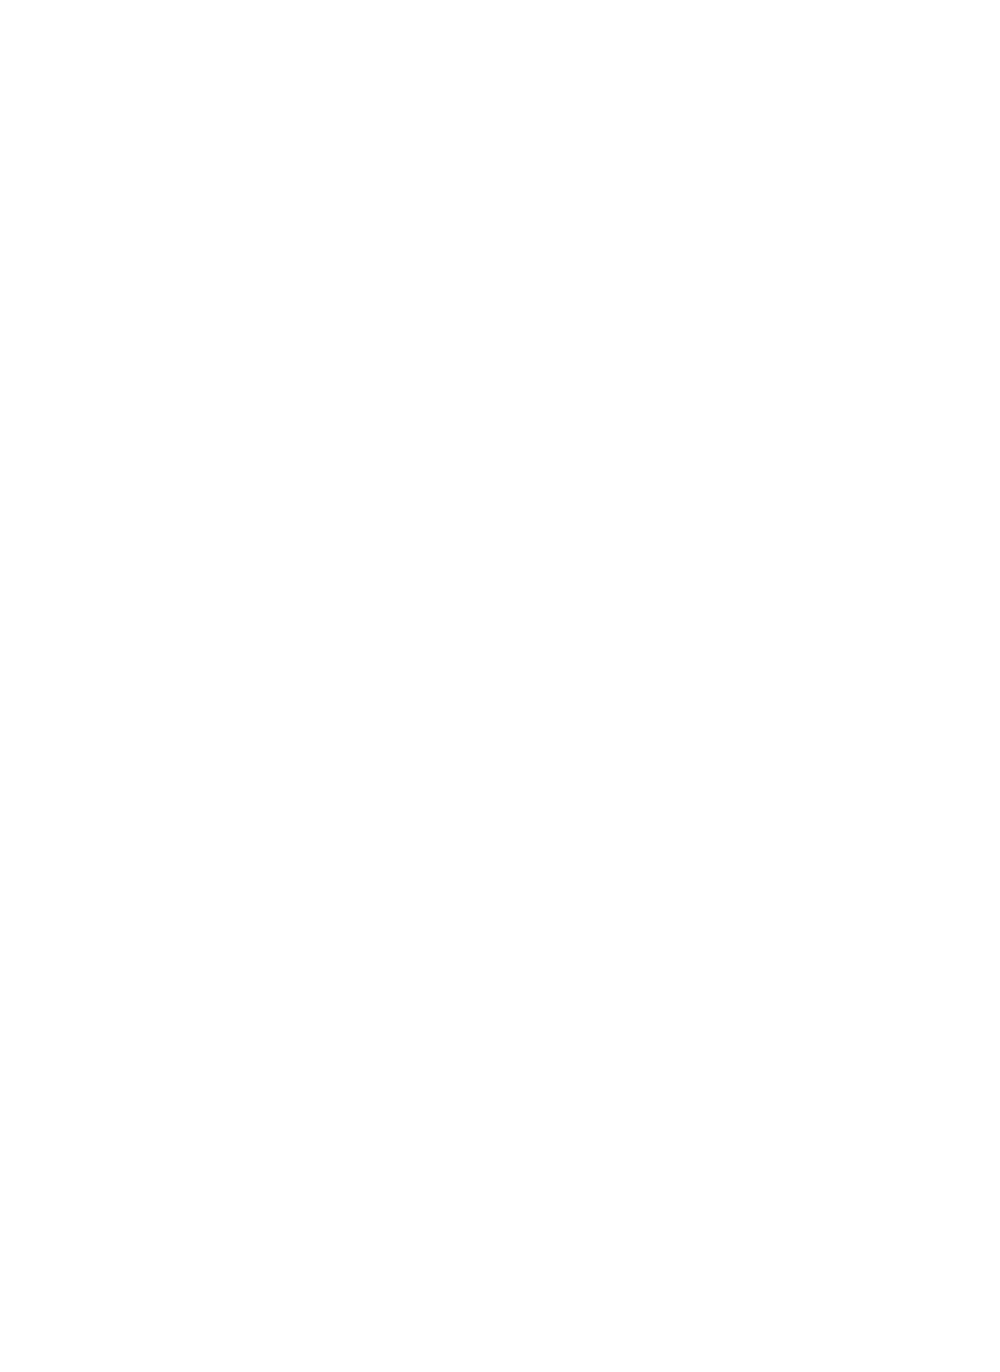 yoma central logo in white